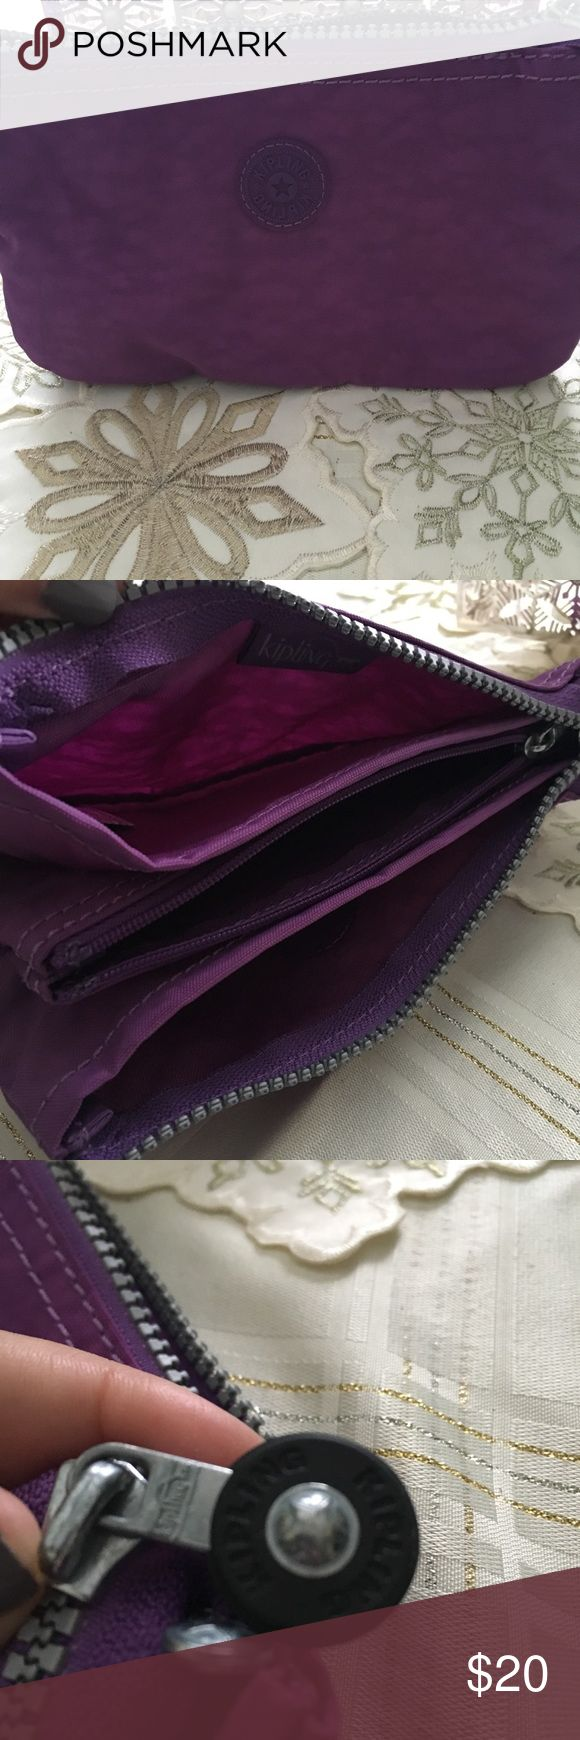 Kipling pouch Kipling pouch, in excellent condition except missing monkey. Authentic, color is violet purple. One main zipper pocket, one inside zipper pocket, two open pockets inside. Very versatile pouch, nylon Kipling Bags